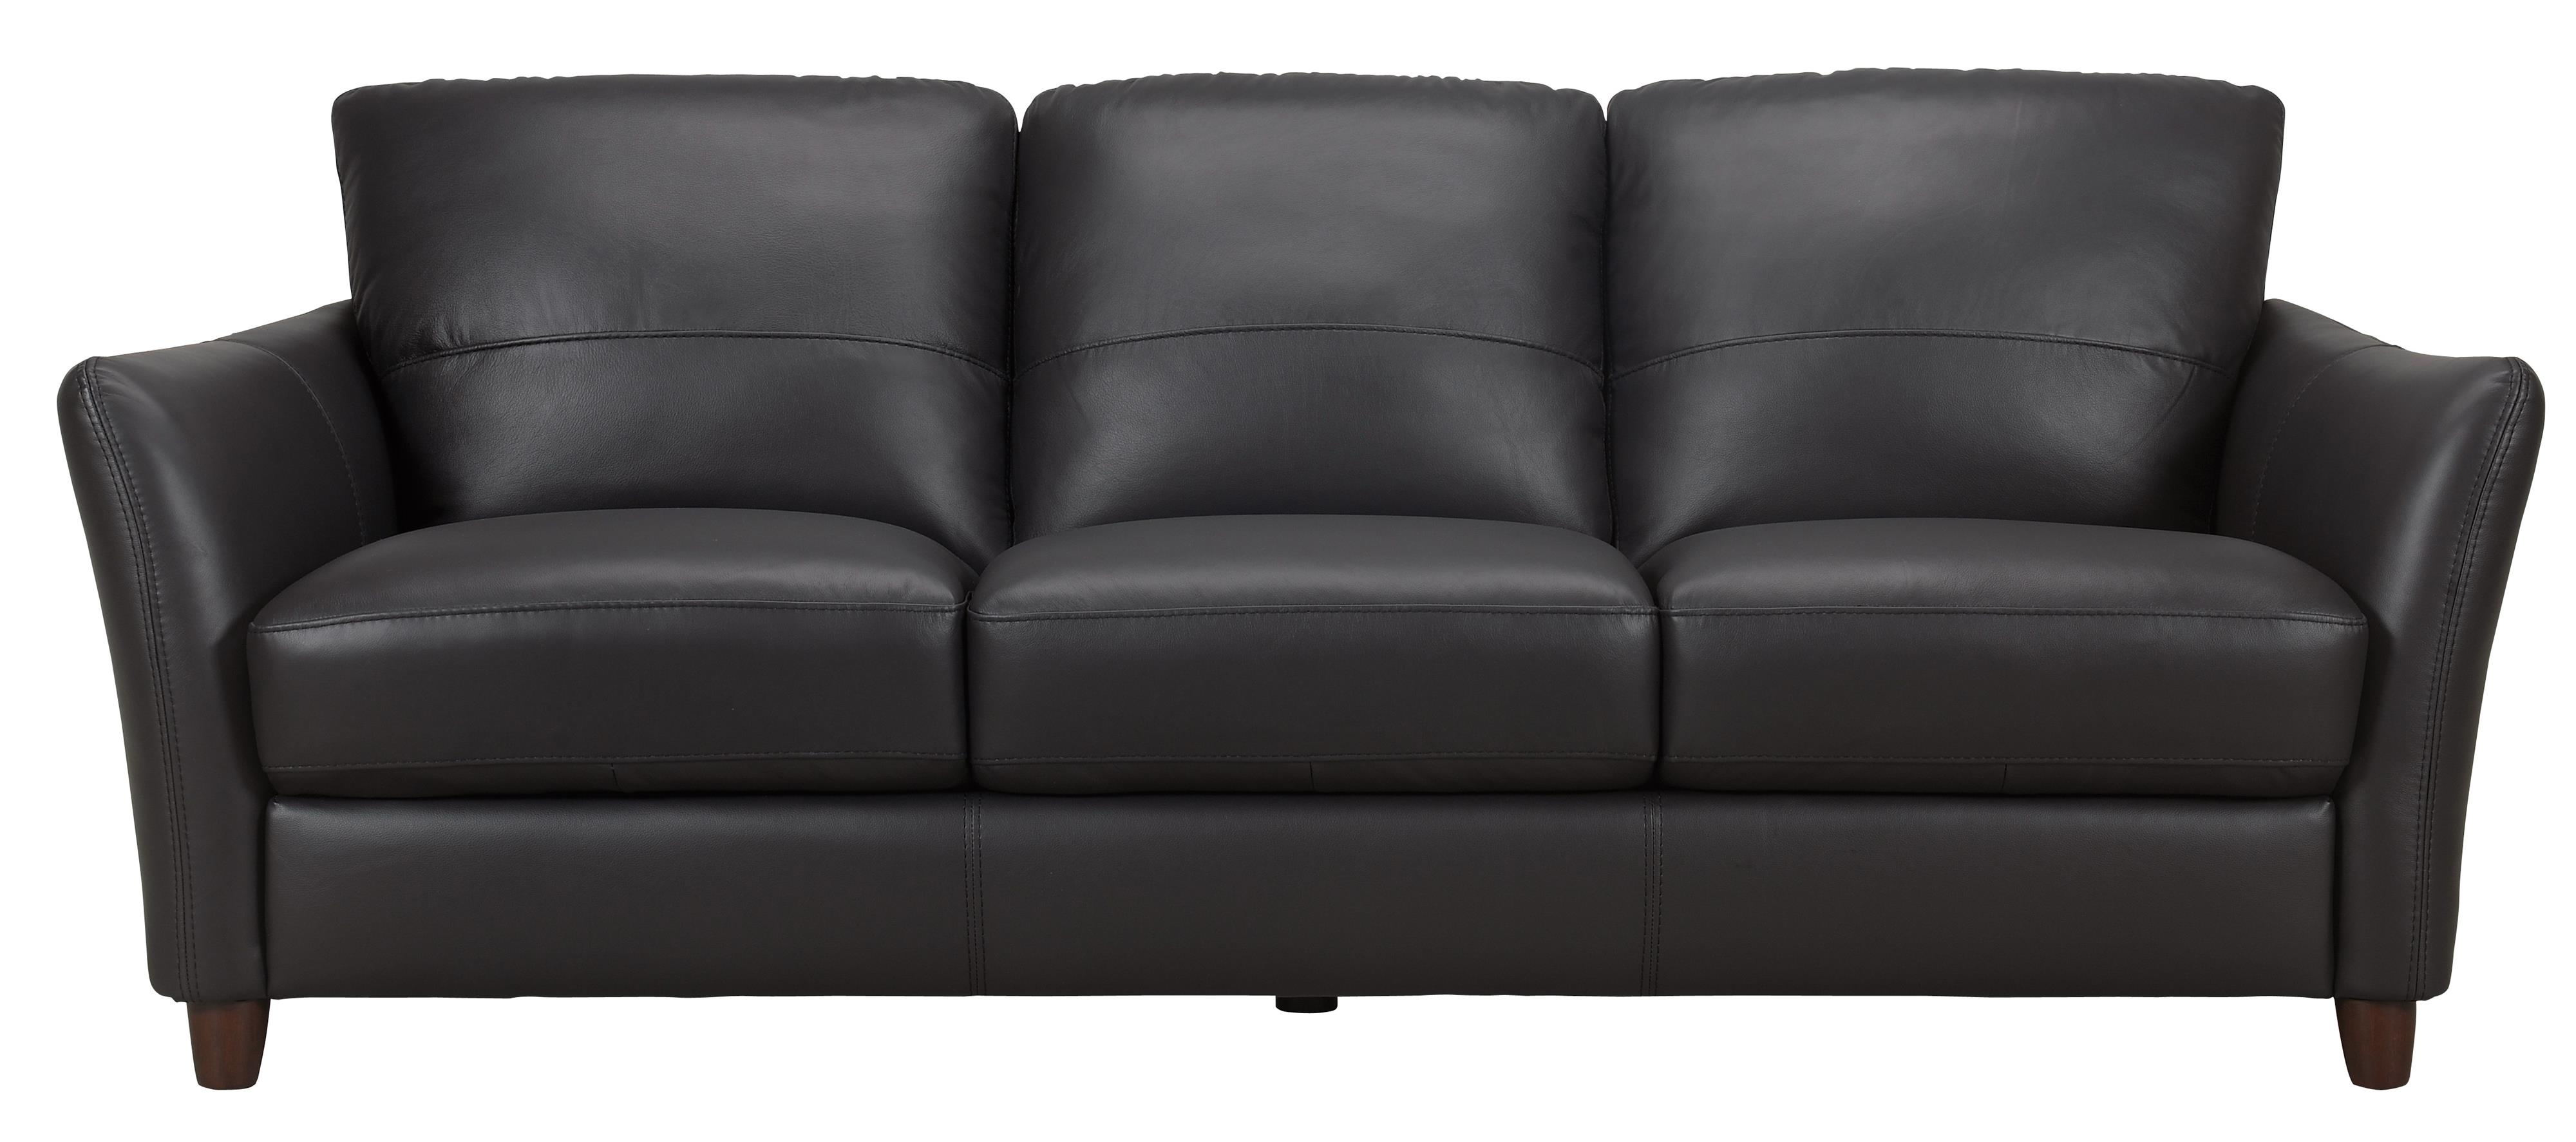 3356 Sofa by Violino at Furniture Superstore - Rochester, MN